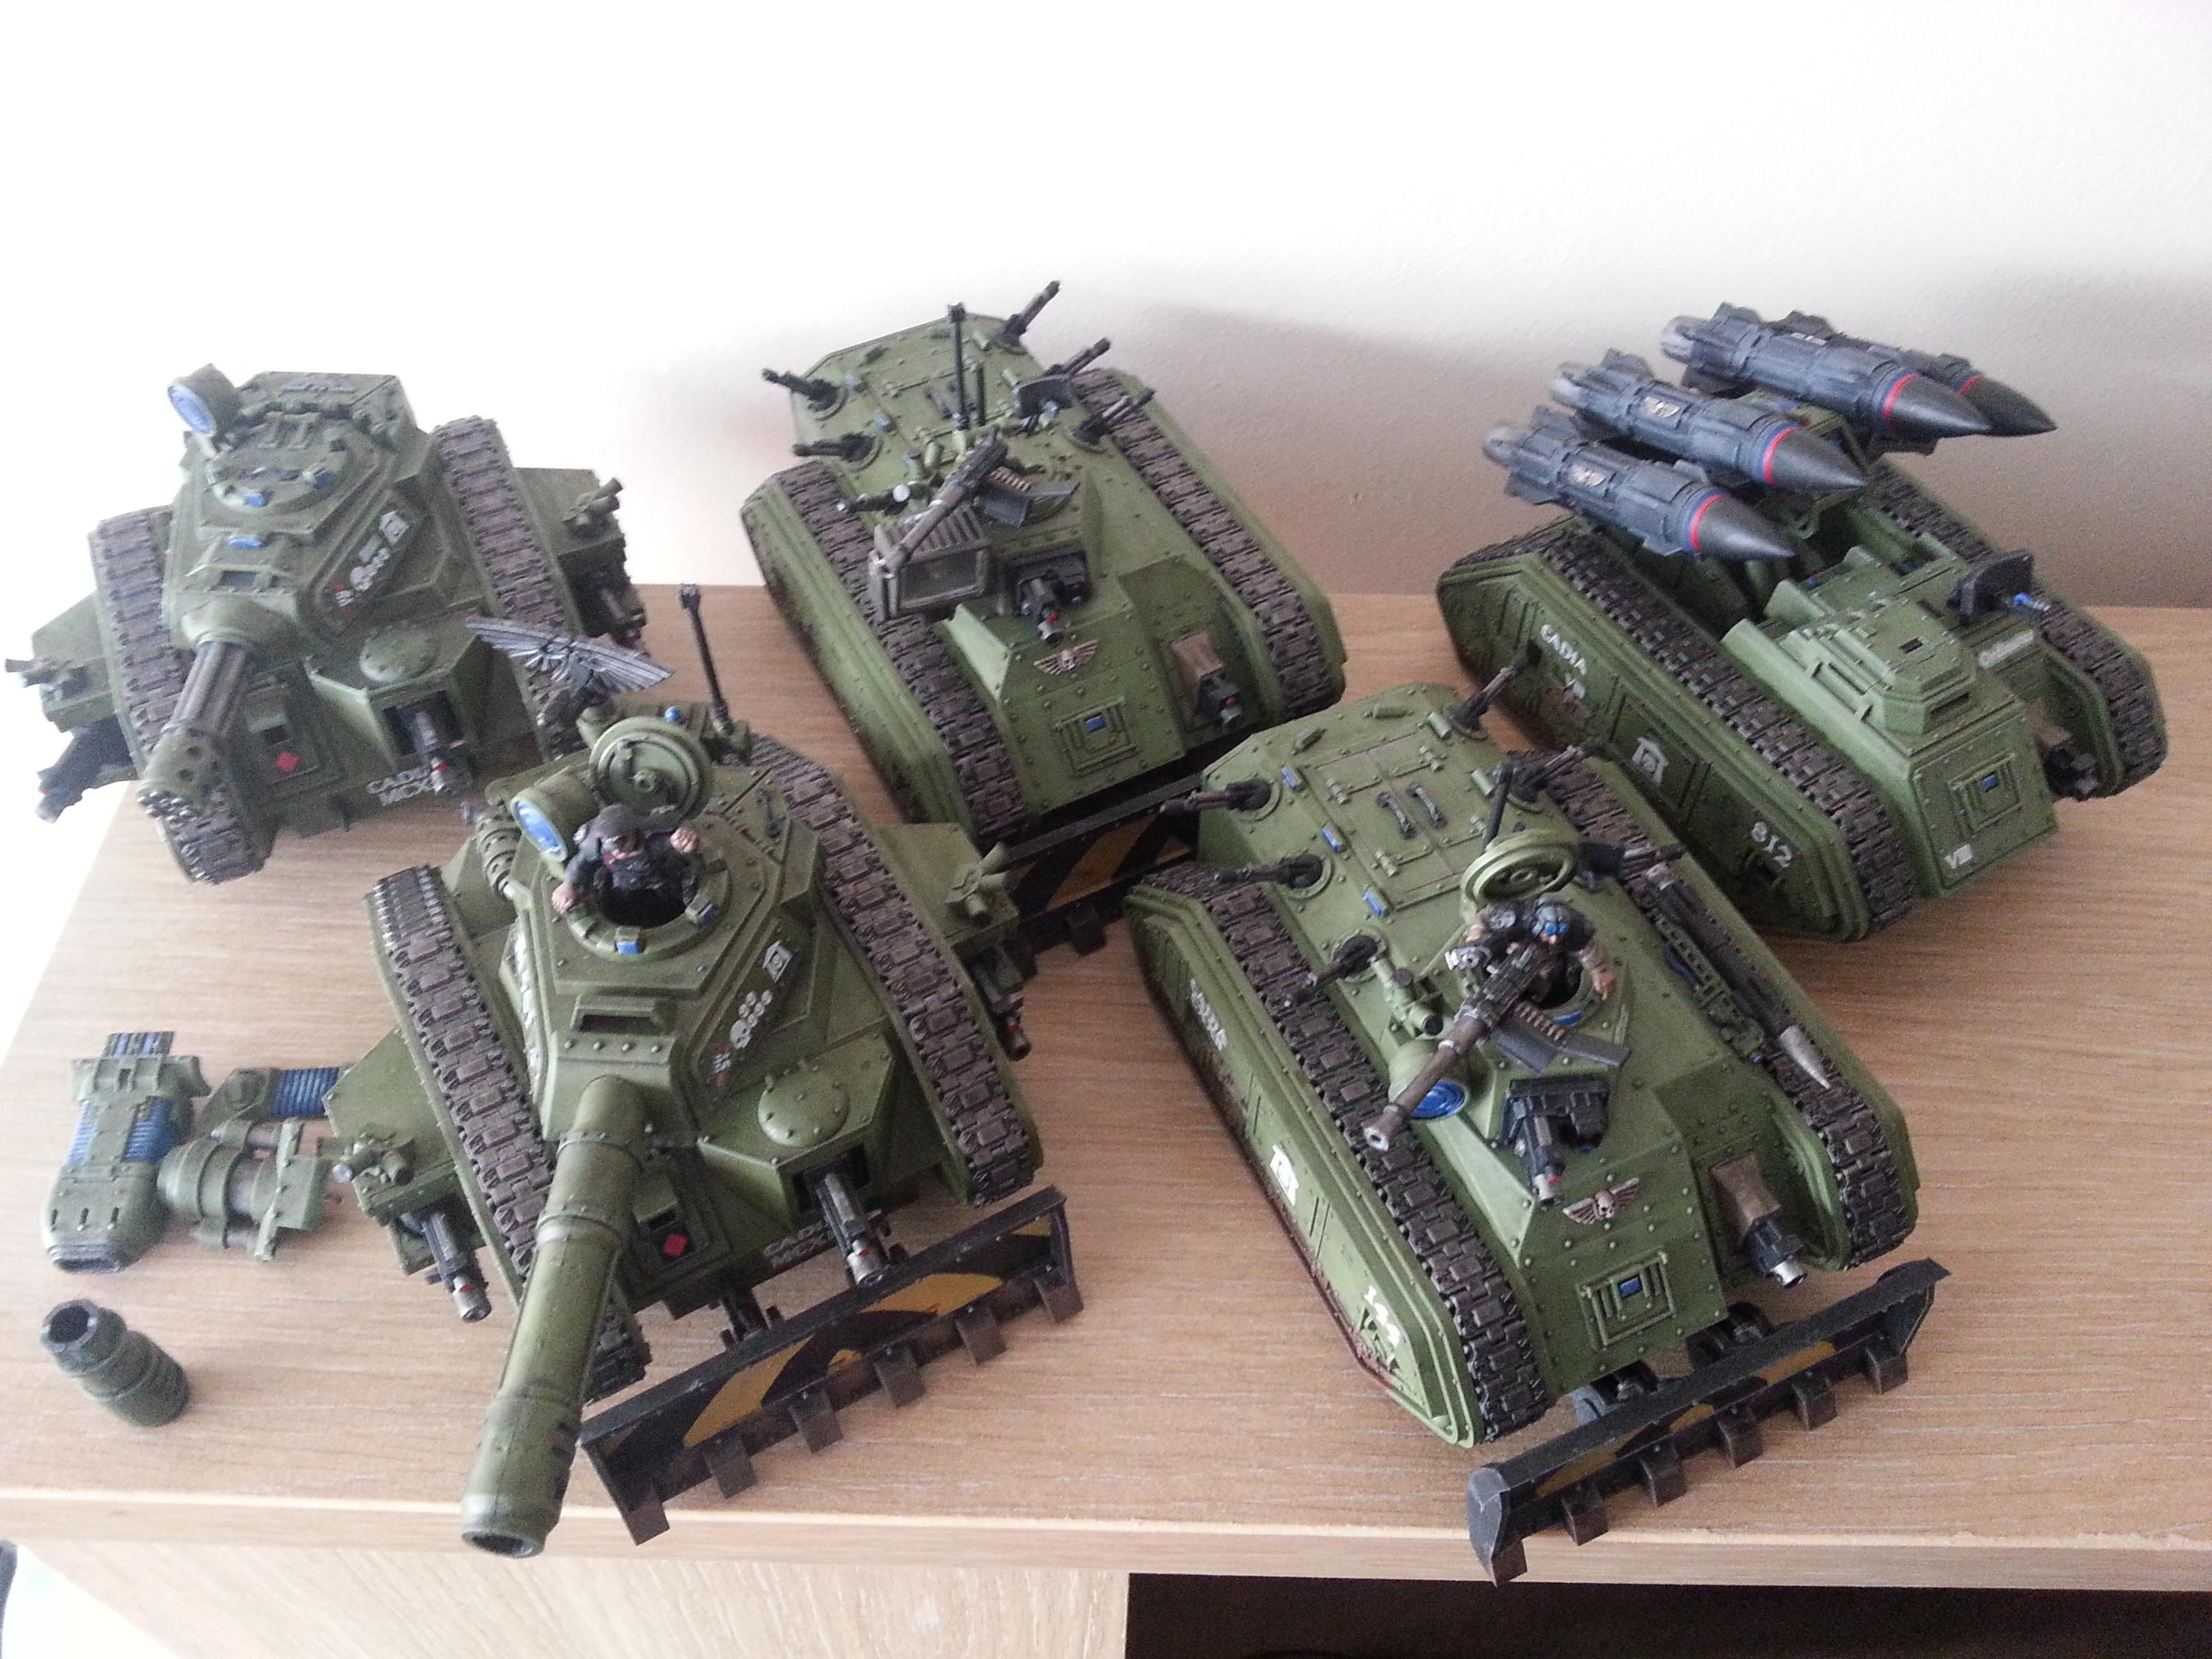 Armor, Astra Militarum, Cadians, Chimera, Imperial Guard, Light, Manticore